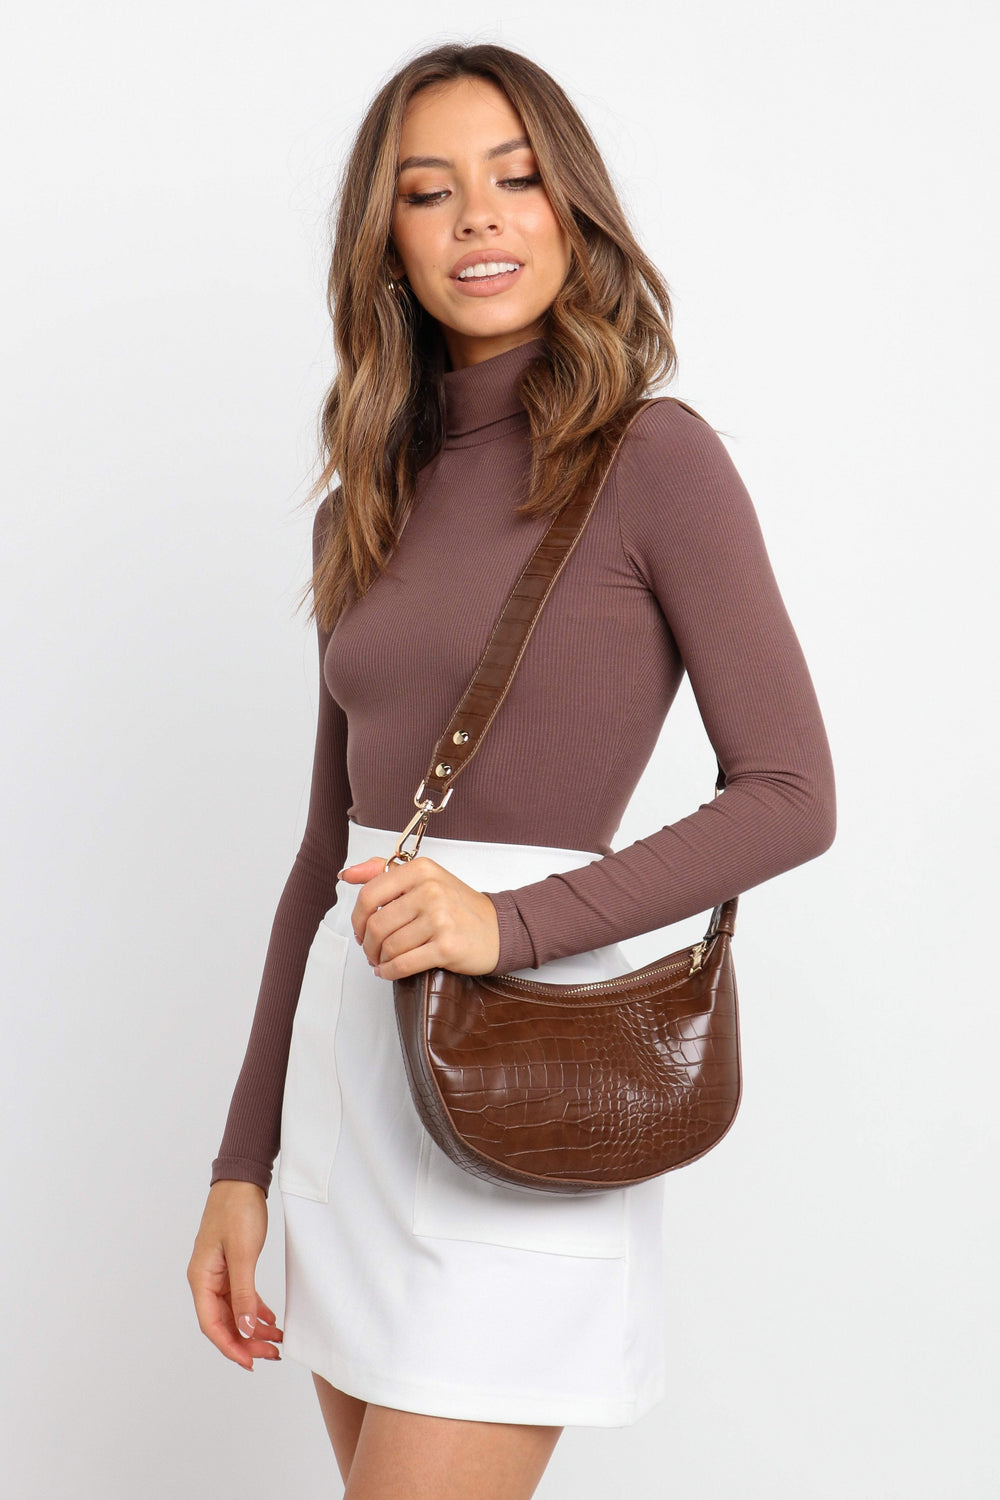 Petal and Pup USA ACCESSORIES Brooklyn Bag - Brown One Size